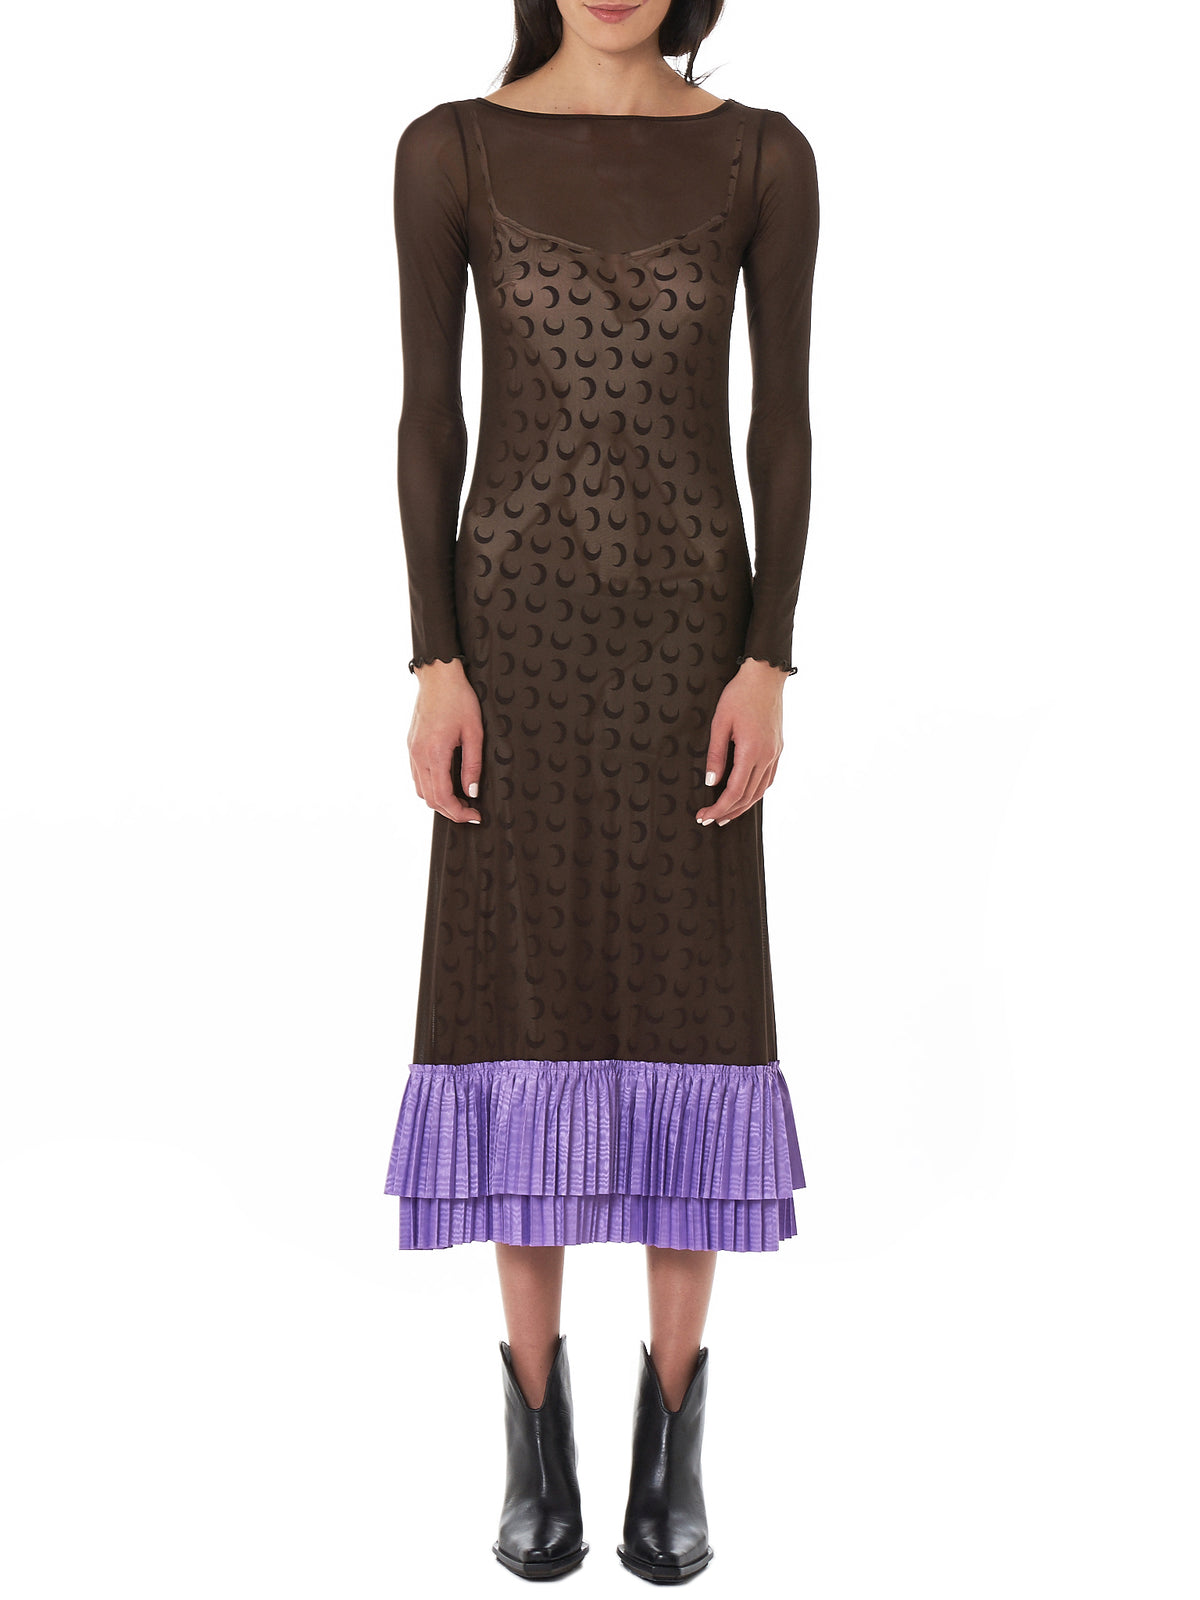 Marine Serre Dress - Hlorenzo Front